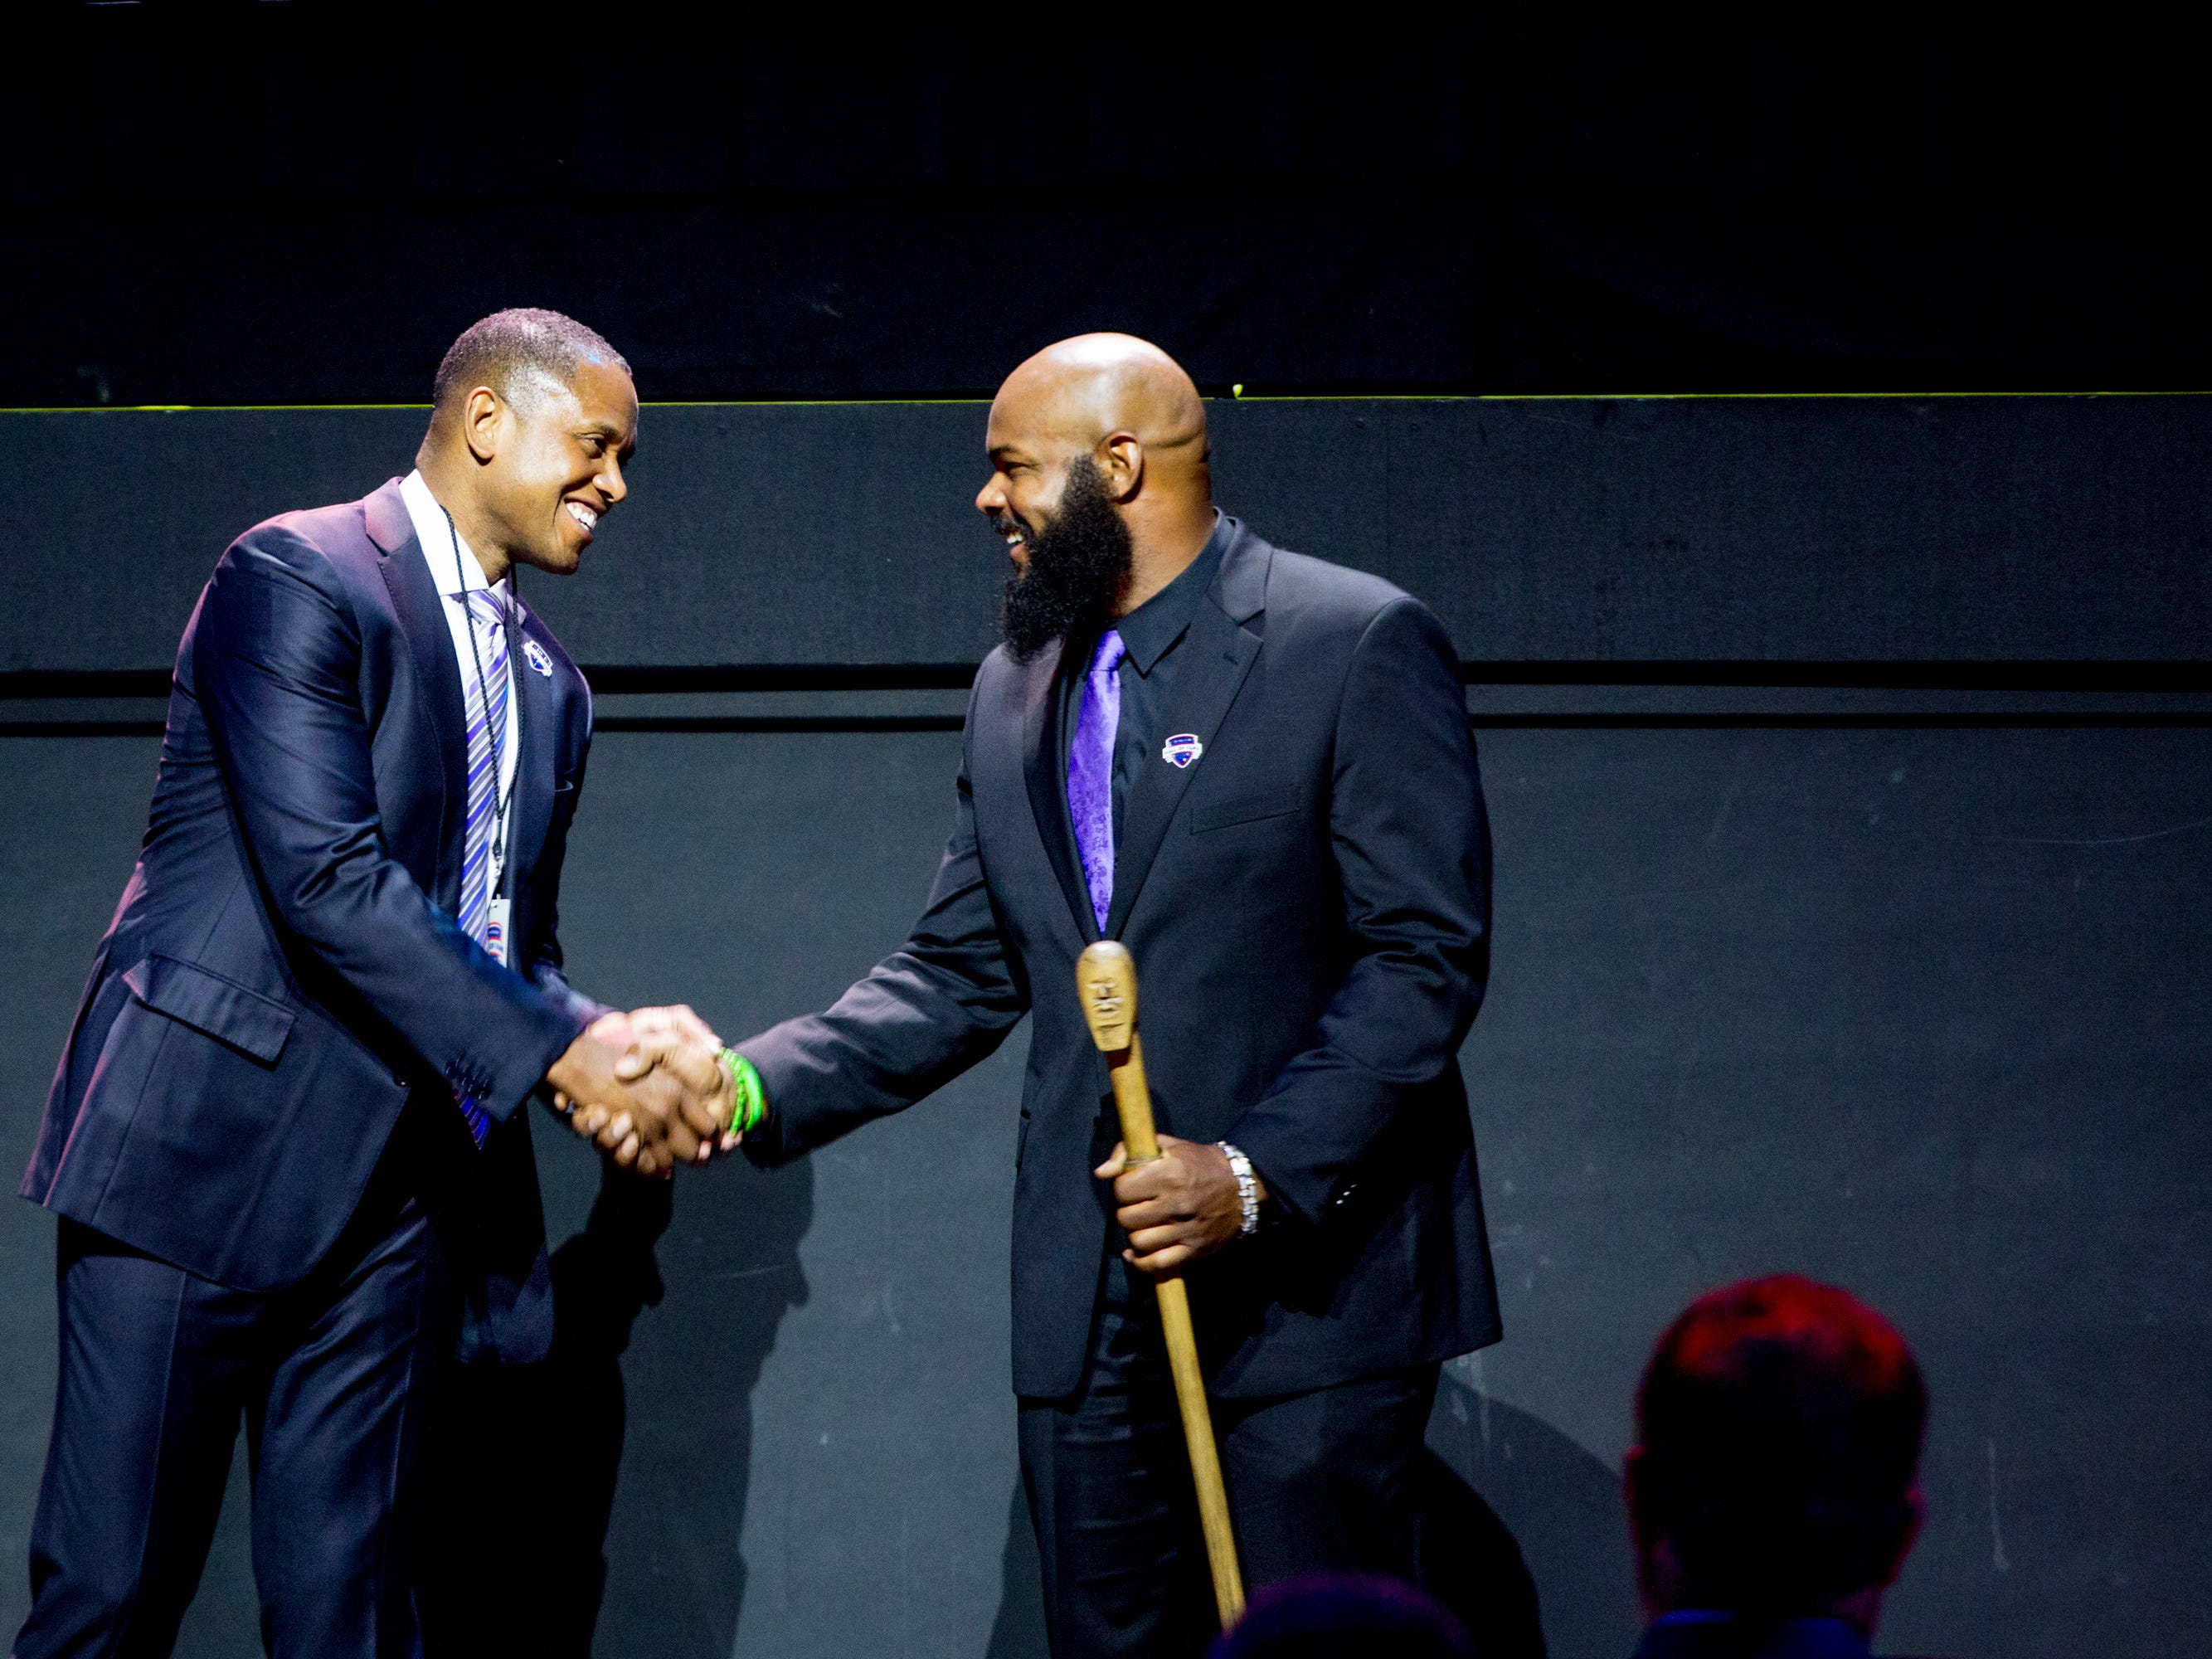 B.J. Armstrong shakes hand with T.J. Ducket during the Michigan Sports Hall of Fame induction ceremony.